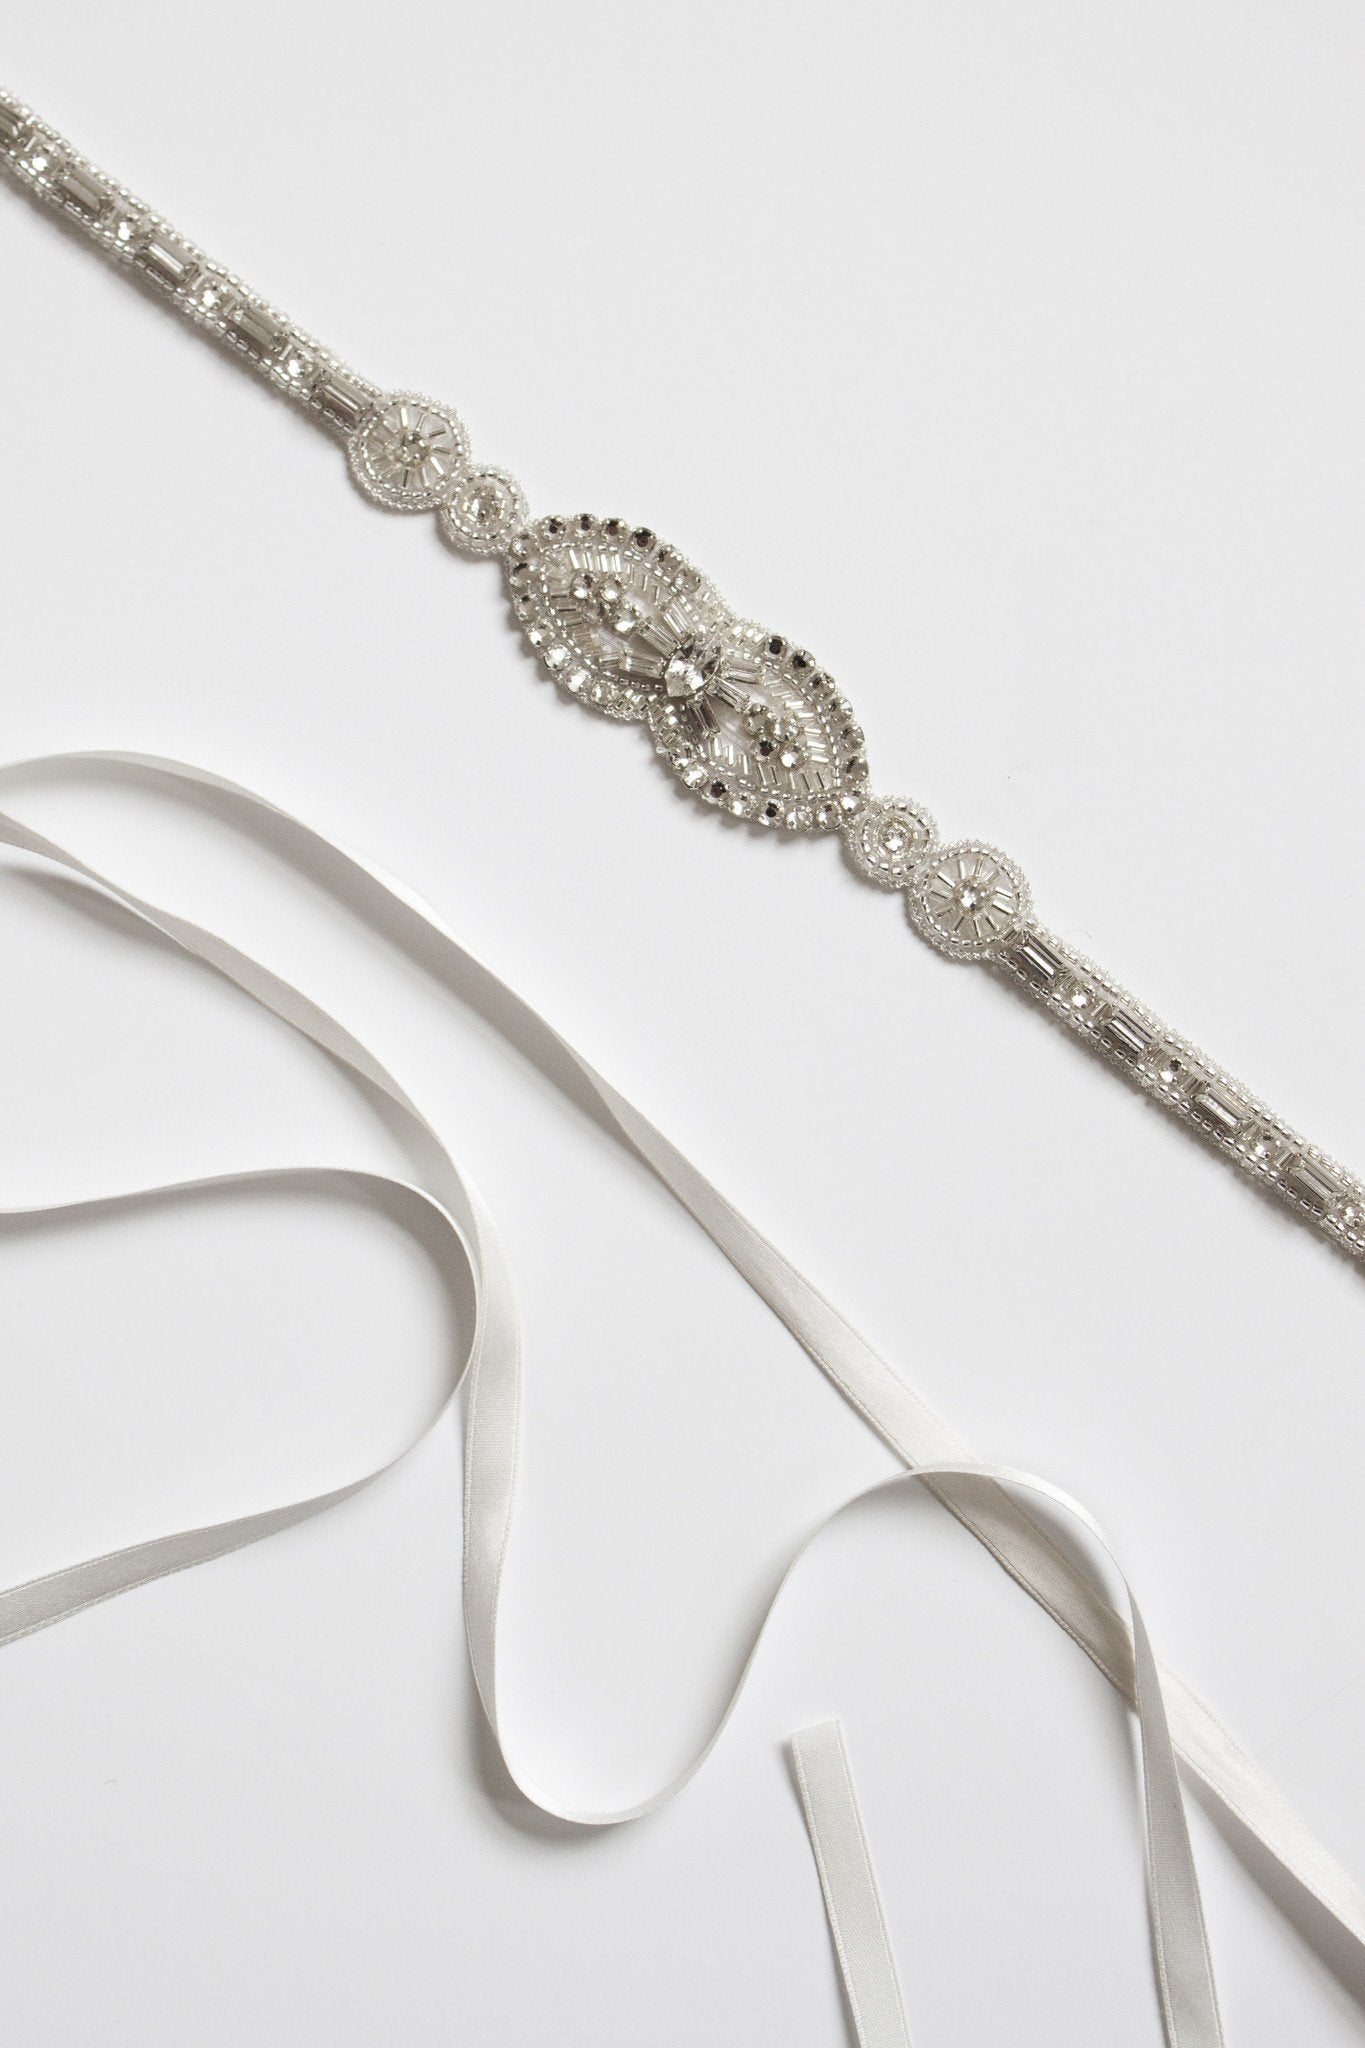 Teardrop Belt - Bridal Accessories - Belts - Crystal and Silver Beads